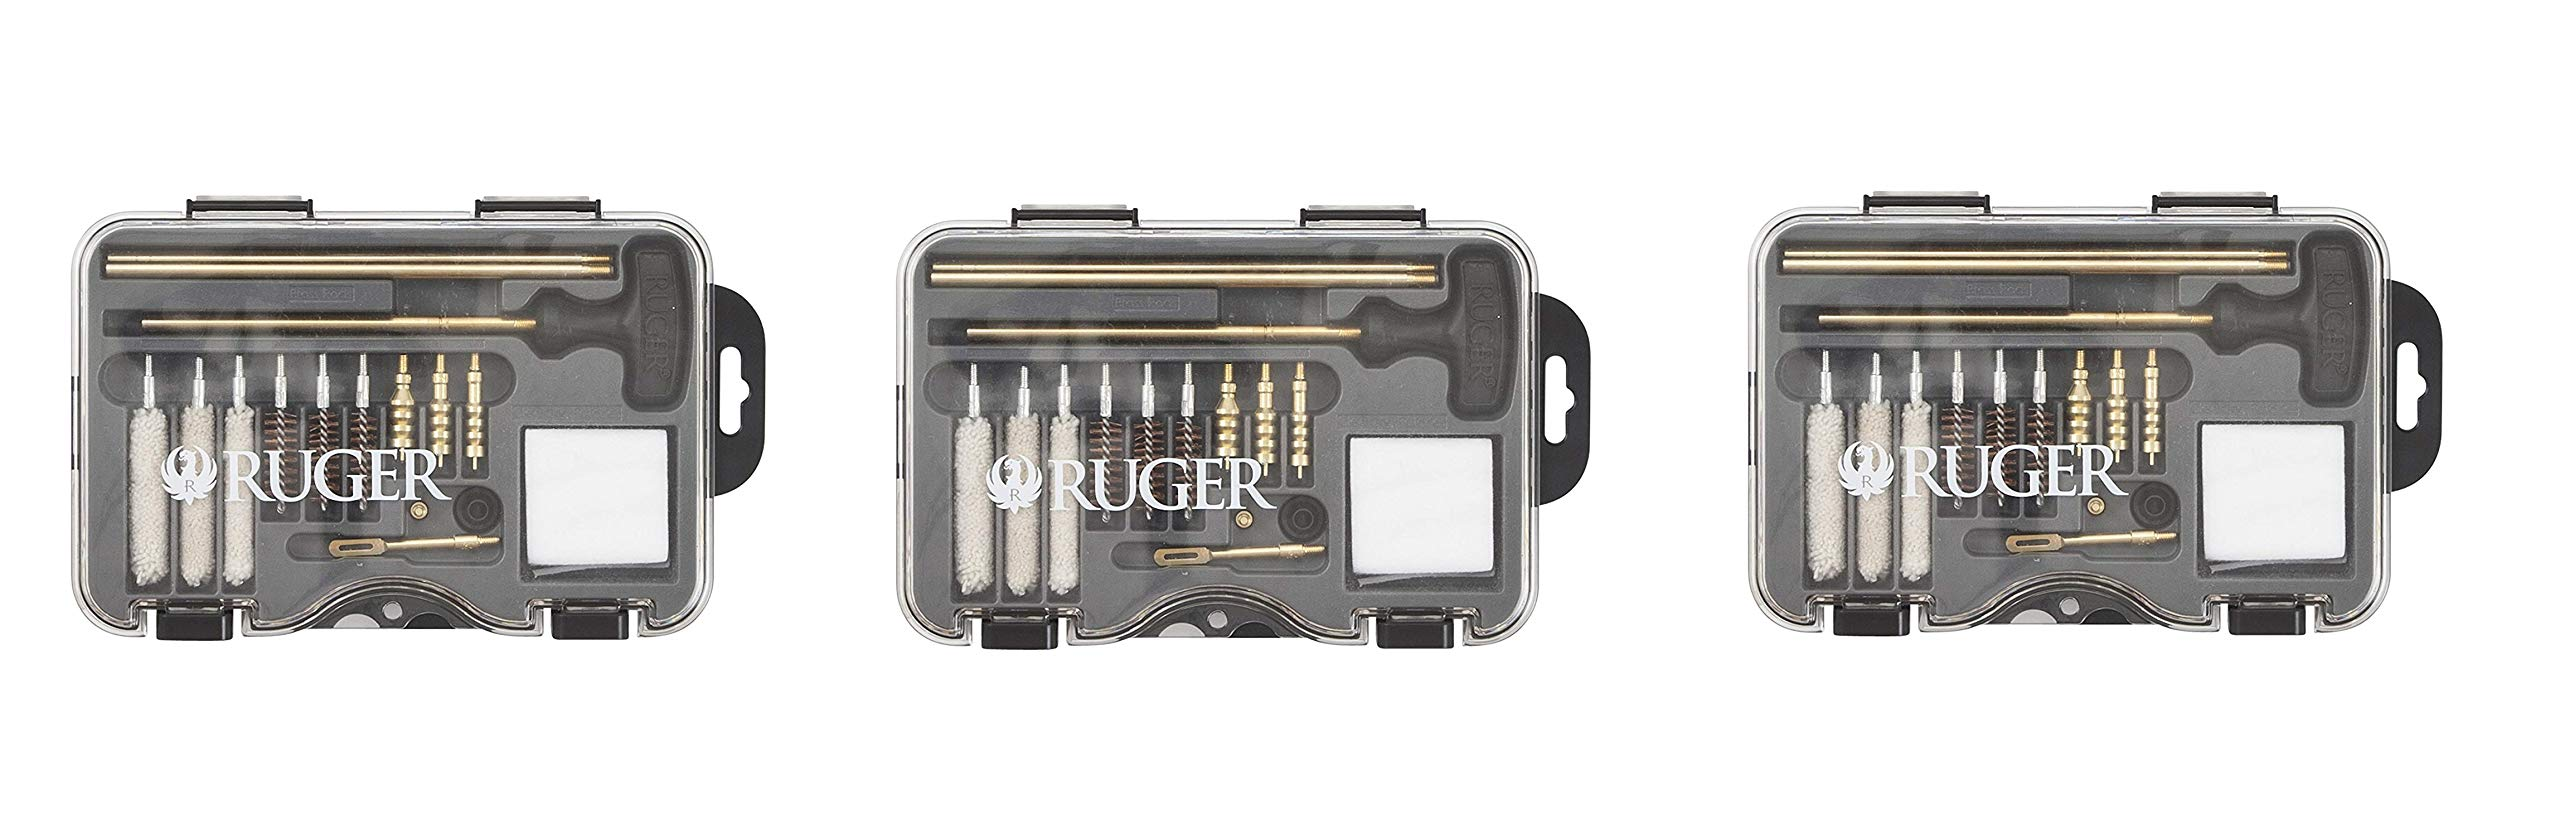 Allen Company Ruger Universal Handgun Cleaning Kit - .380ACP.357 Magnum, 9mm, 10mm.40 Caliber.38 Special.44 Magnum and .45 ACP (Pack of 3) by Allen Company